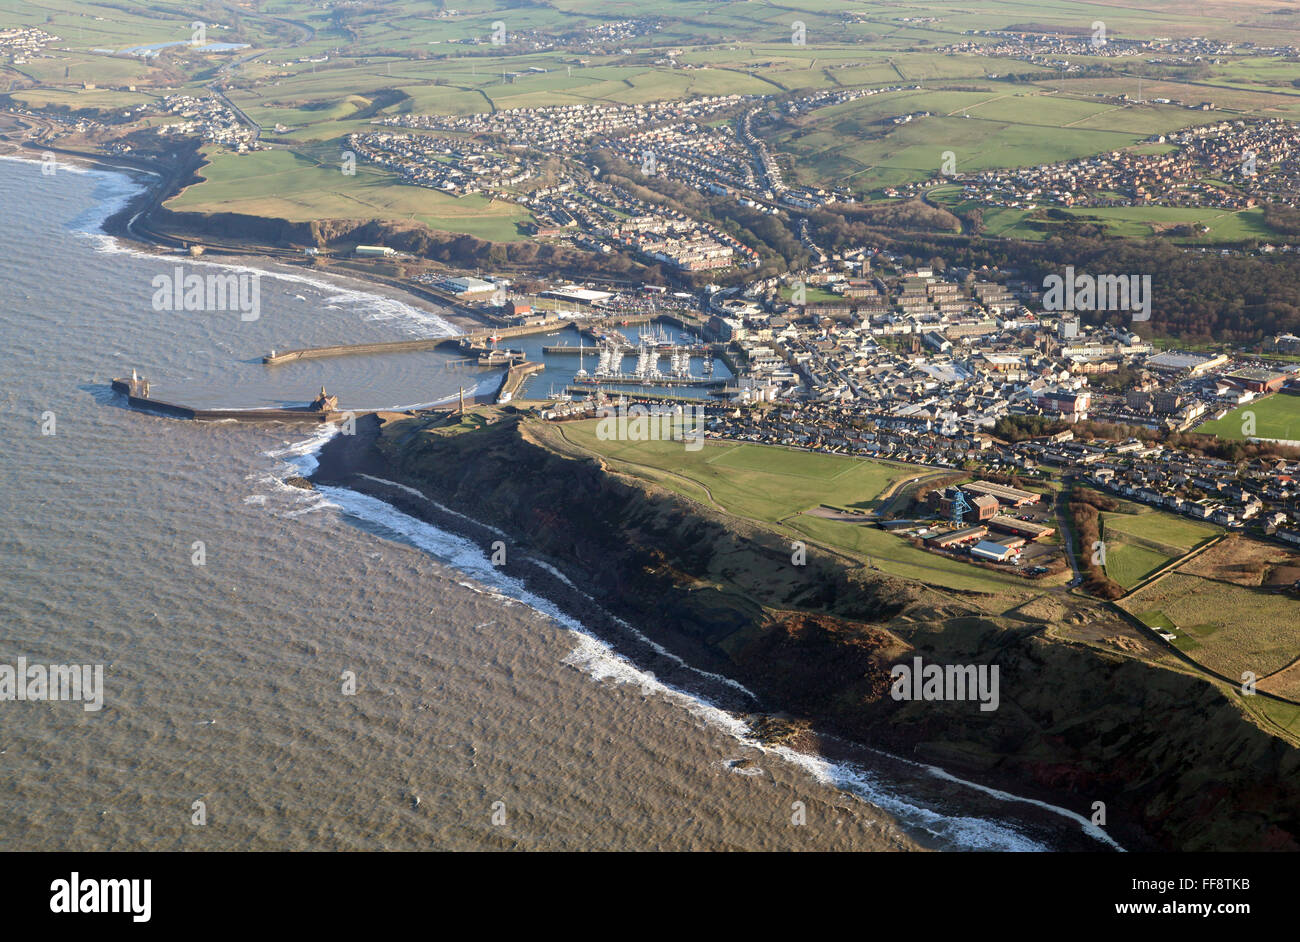 aerial view of the coast in Cumbria at Whitehaven, UK - Stock Image